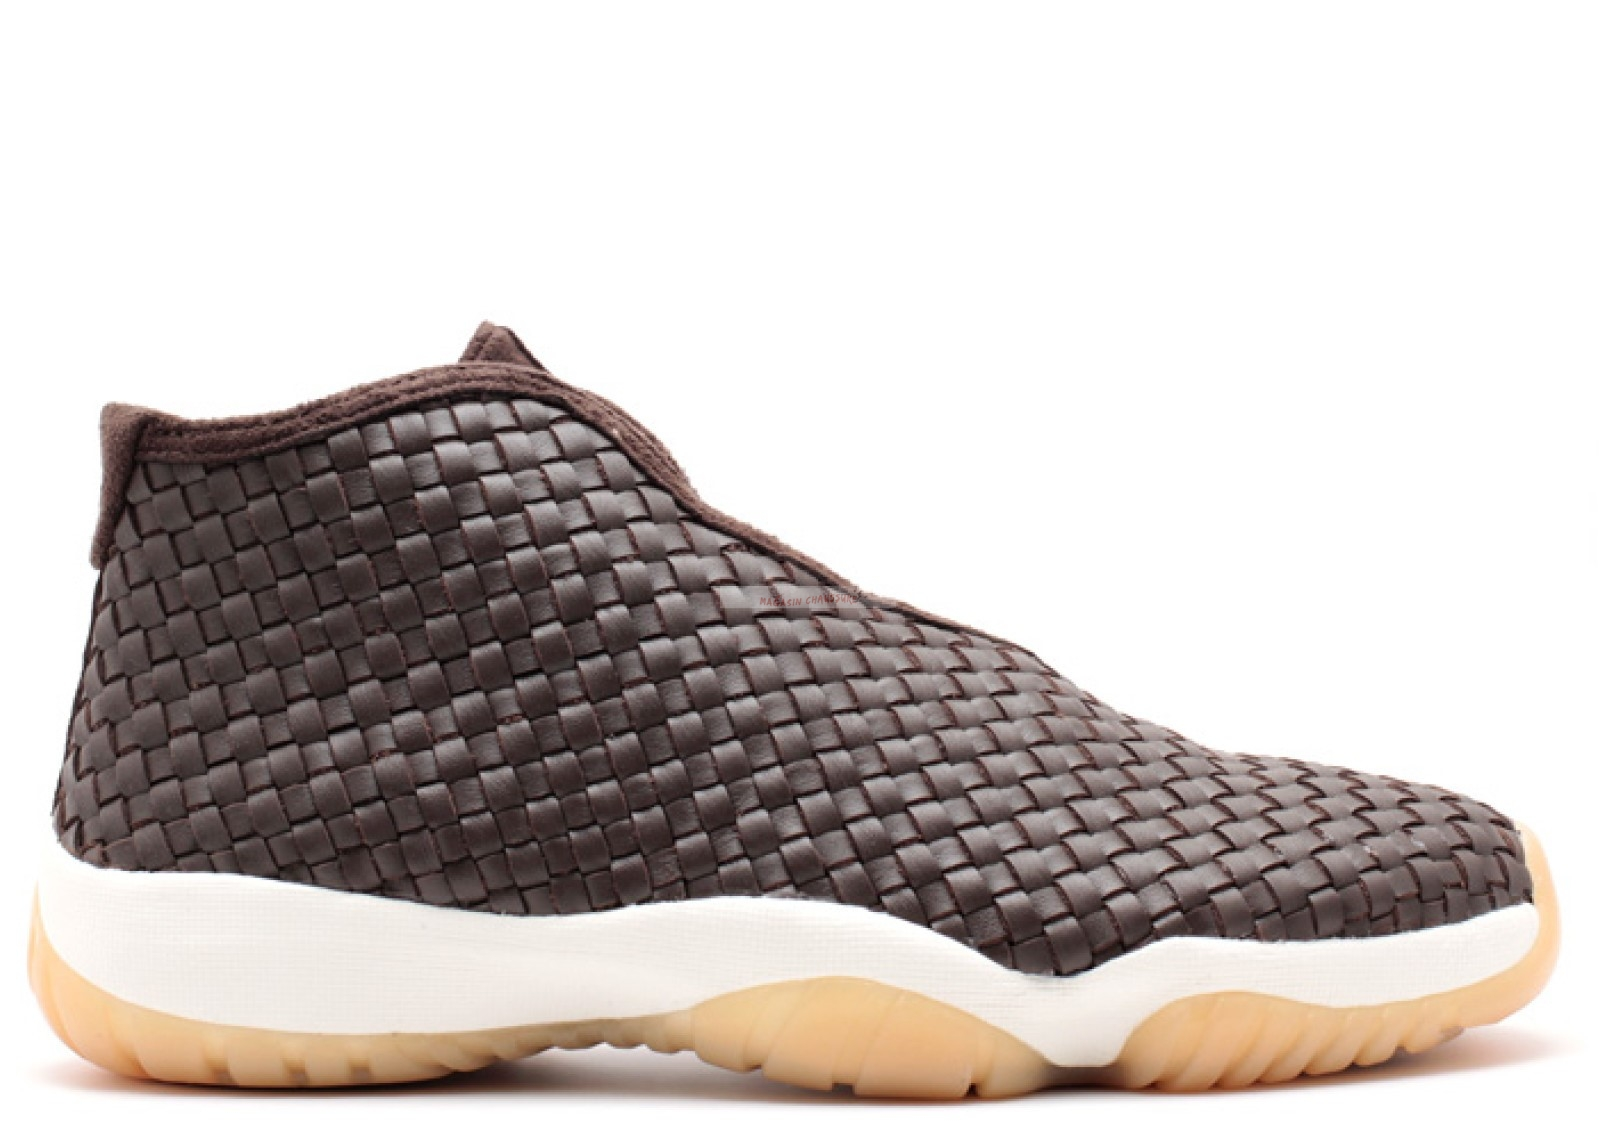 Air Jordan Future Premium Marron Blanc (652141-219) Chaussure de Basket